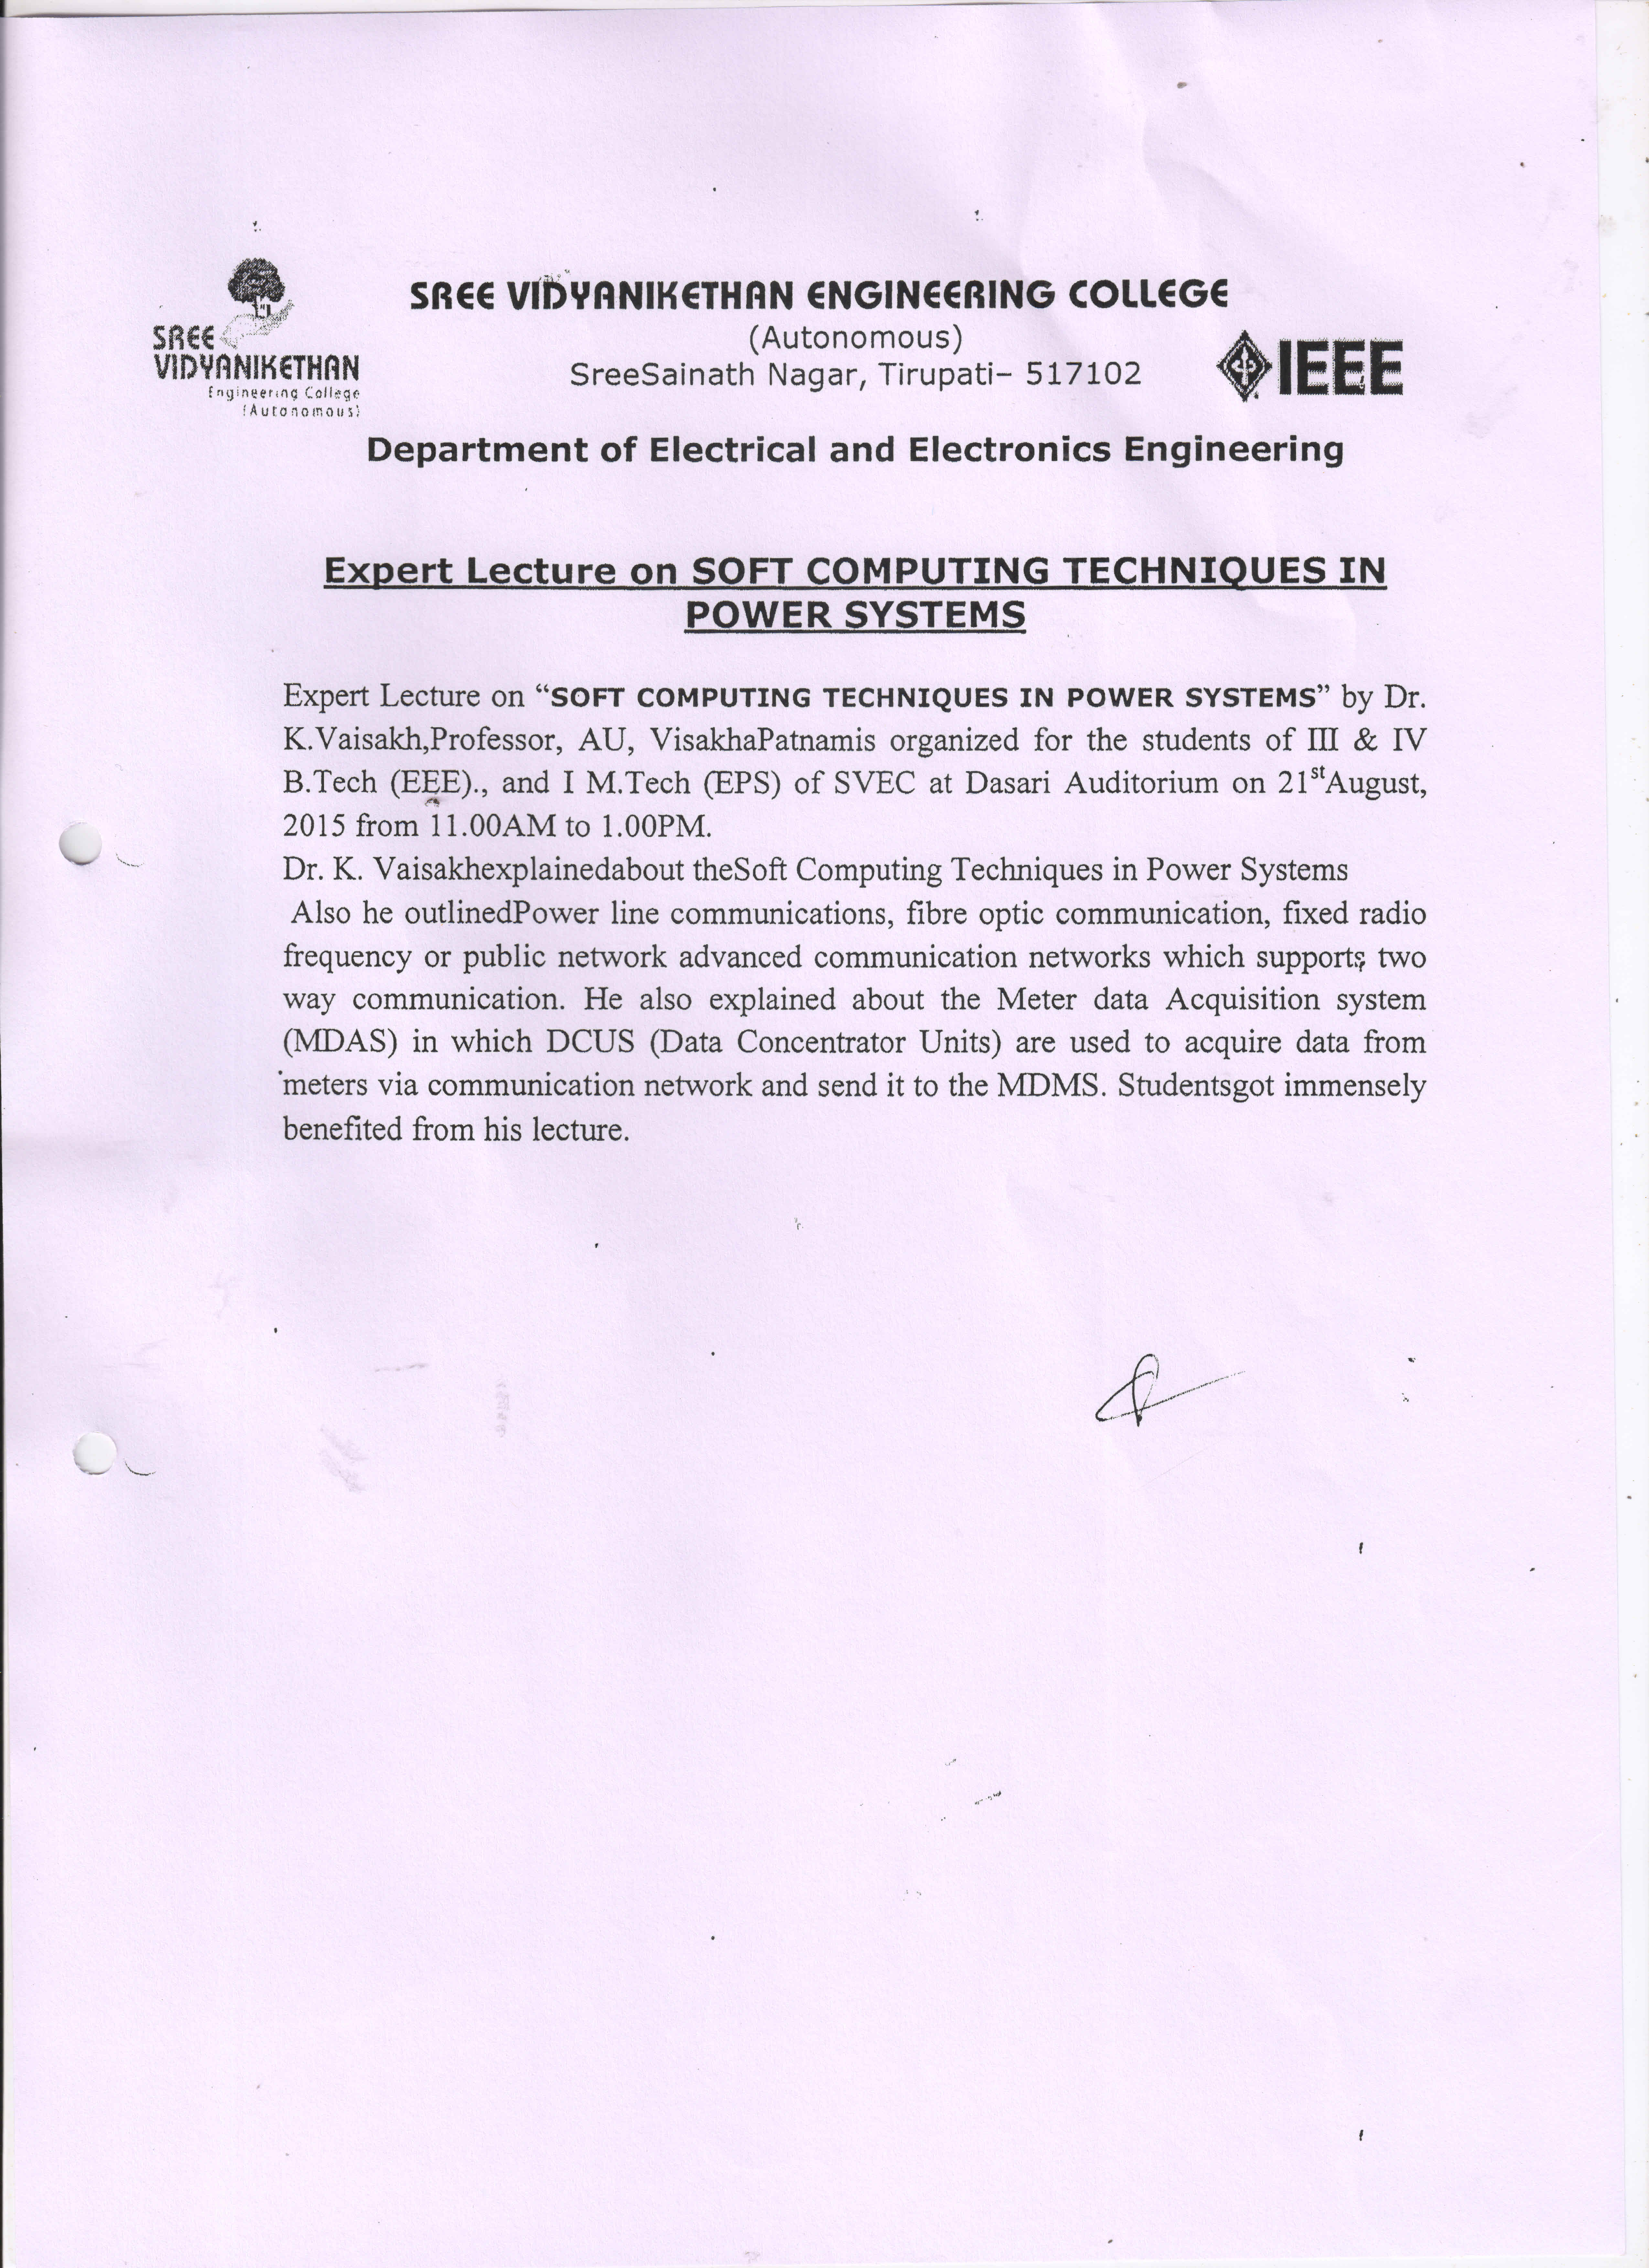 Electrical and Electronics of Engineering (EEE) | SVEC